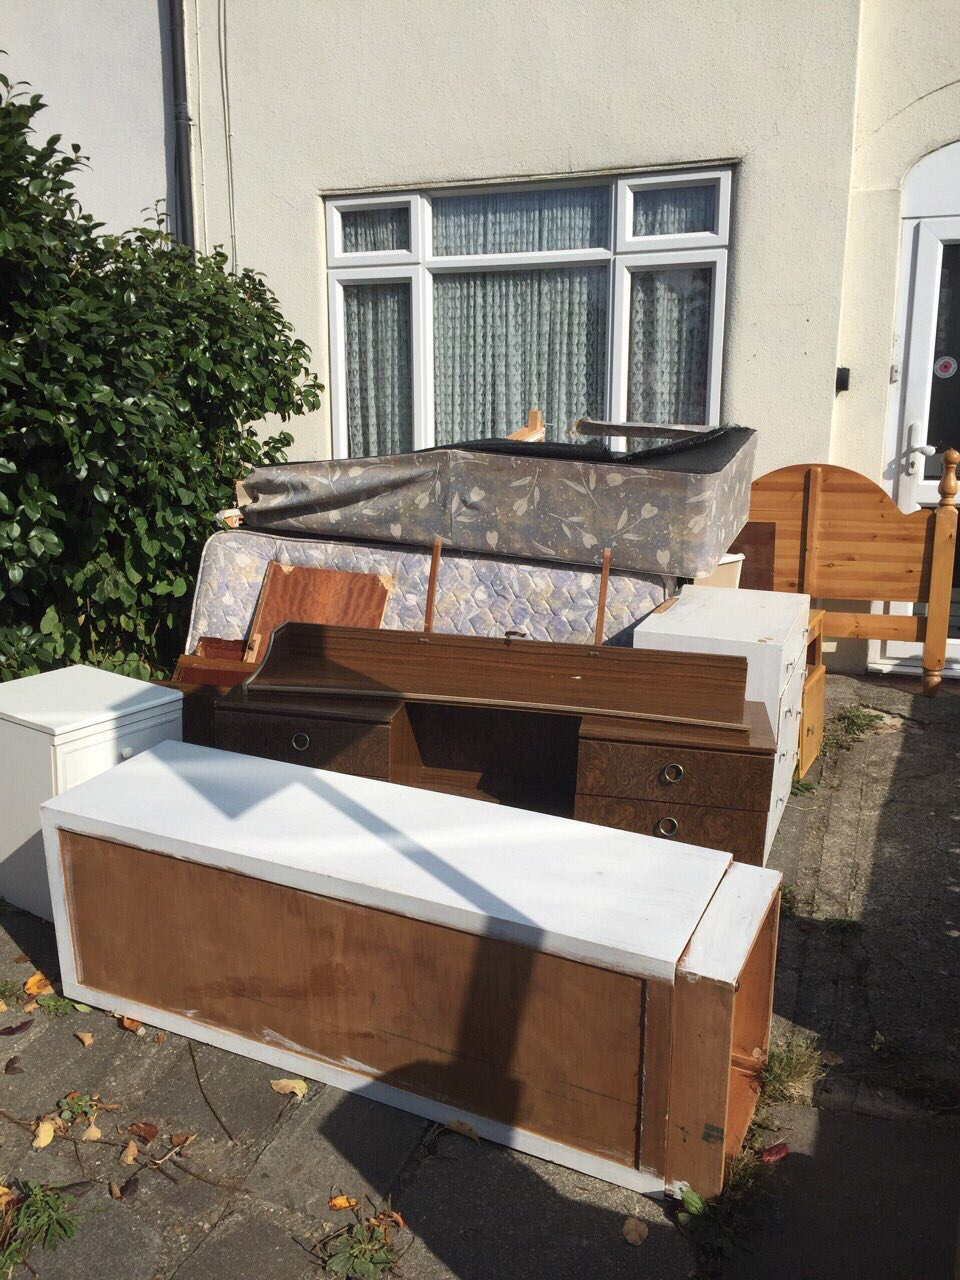 TW9 removal of waste Richmond